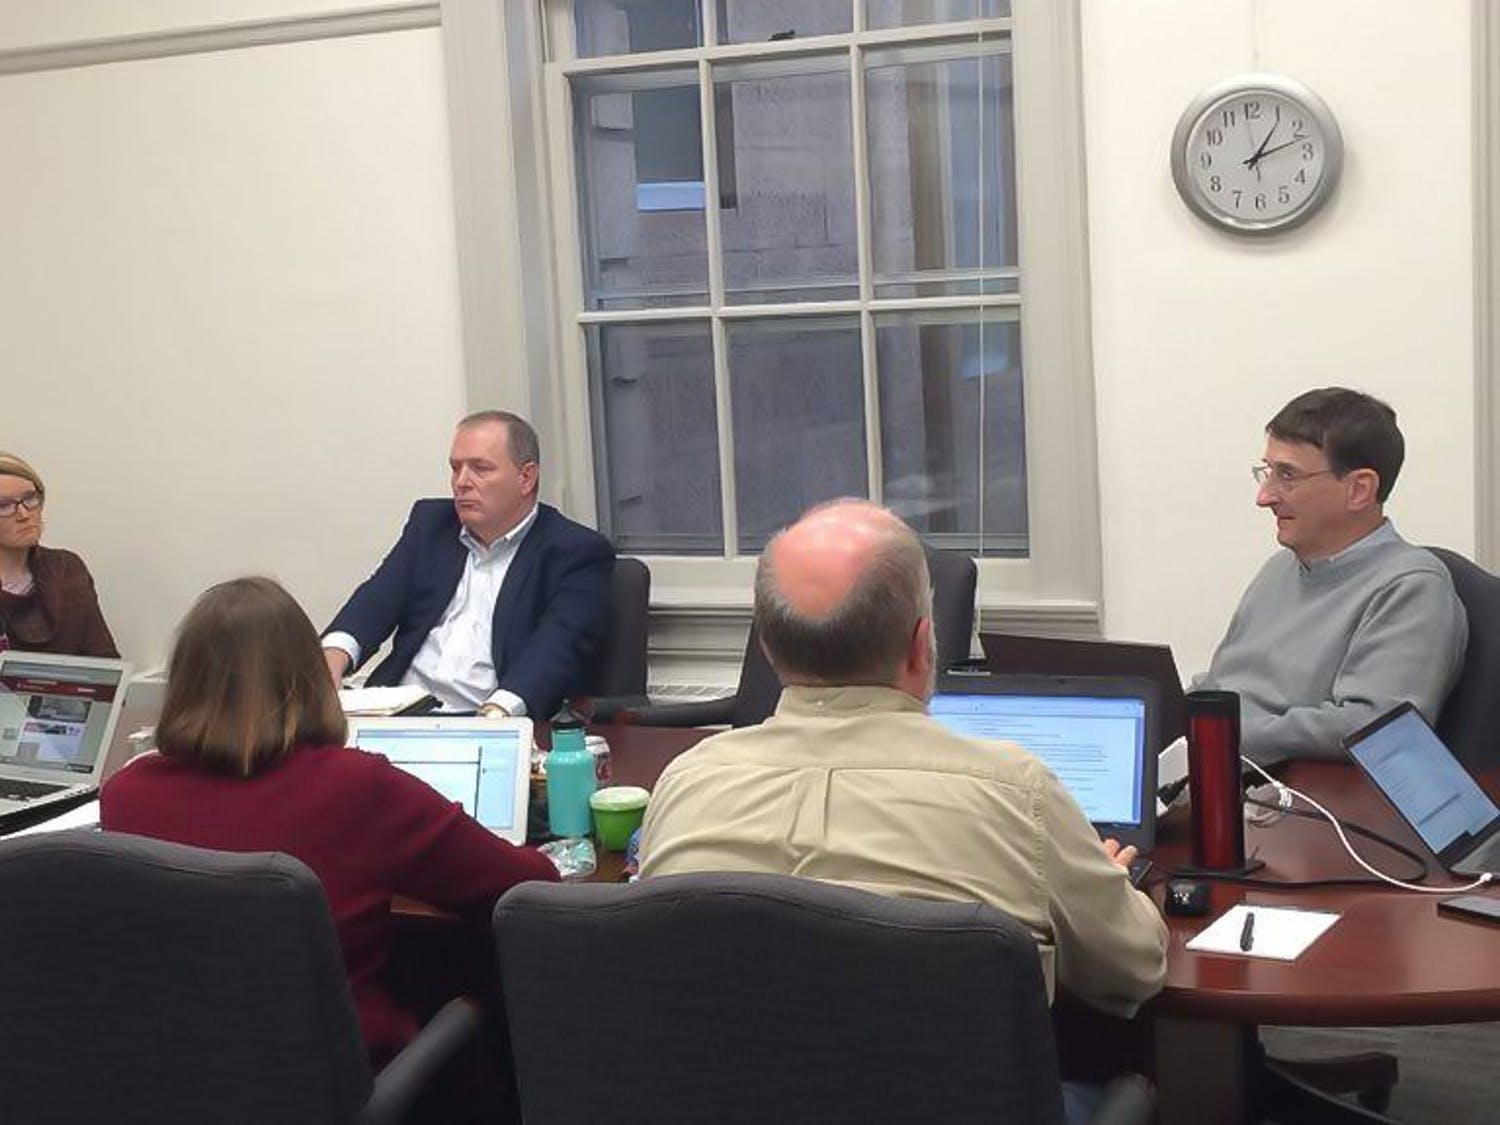 University Committee members discussed a number of campus issues at their meeting in Bascom Hall Monday.